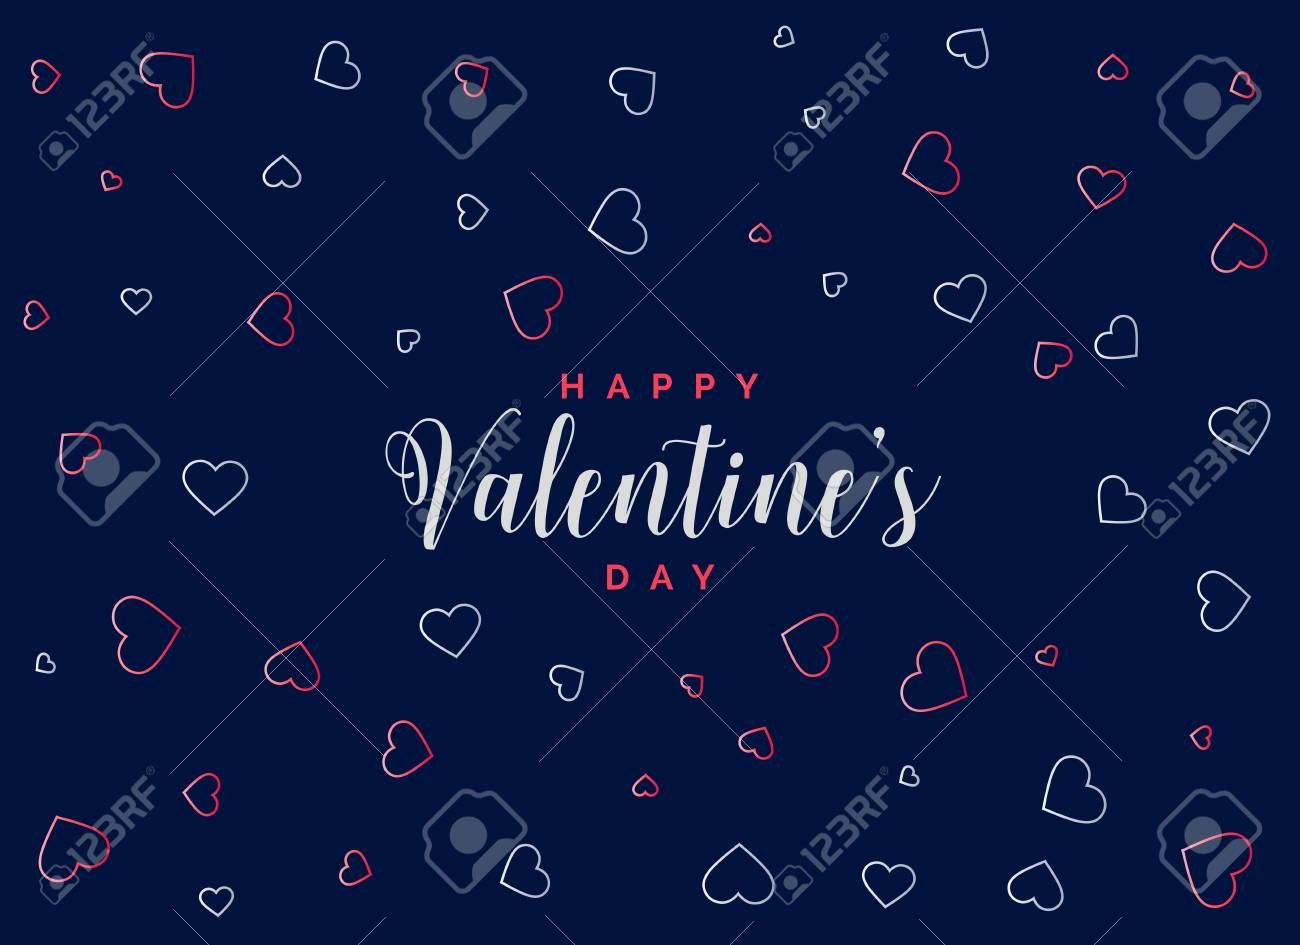 blue background with hearts pattern for valentines day